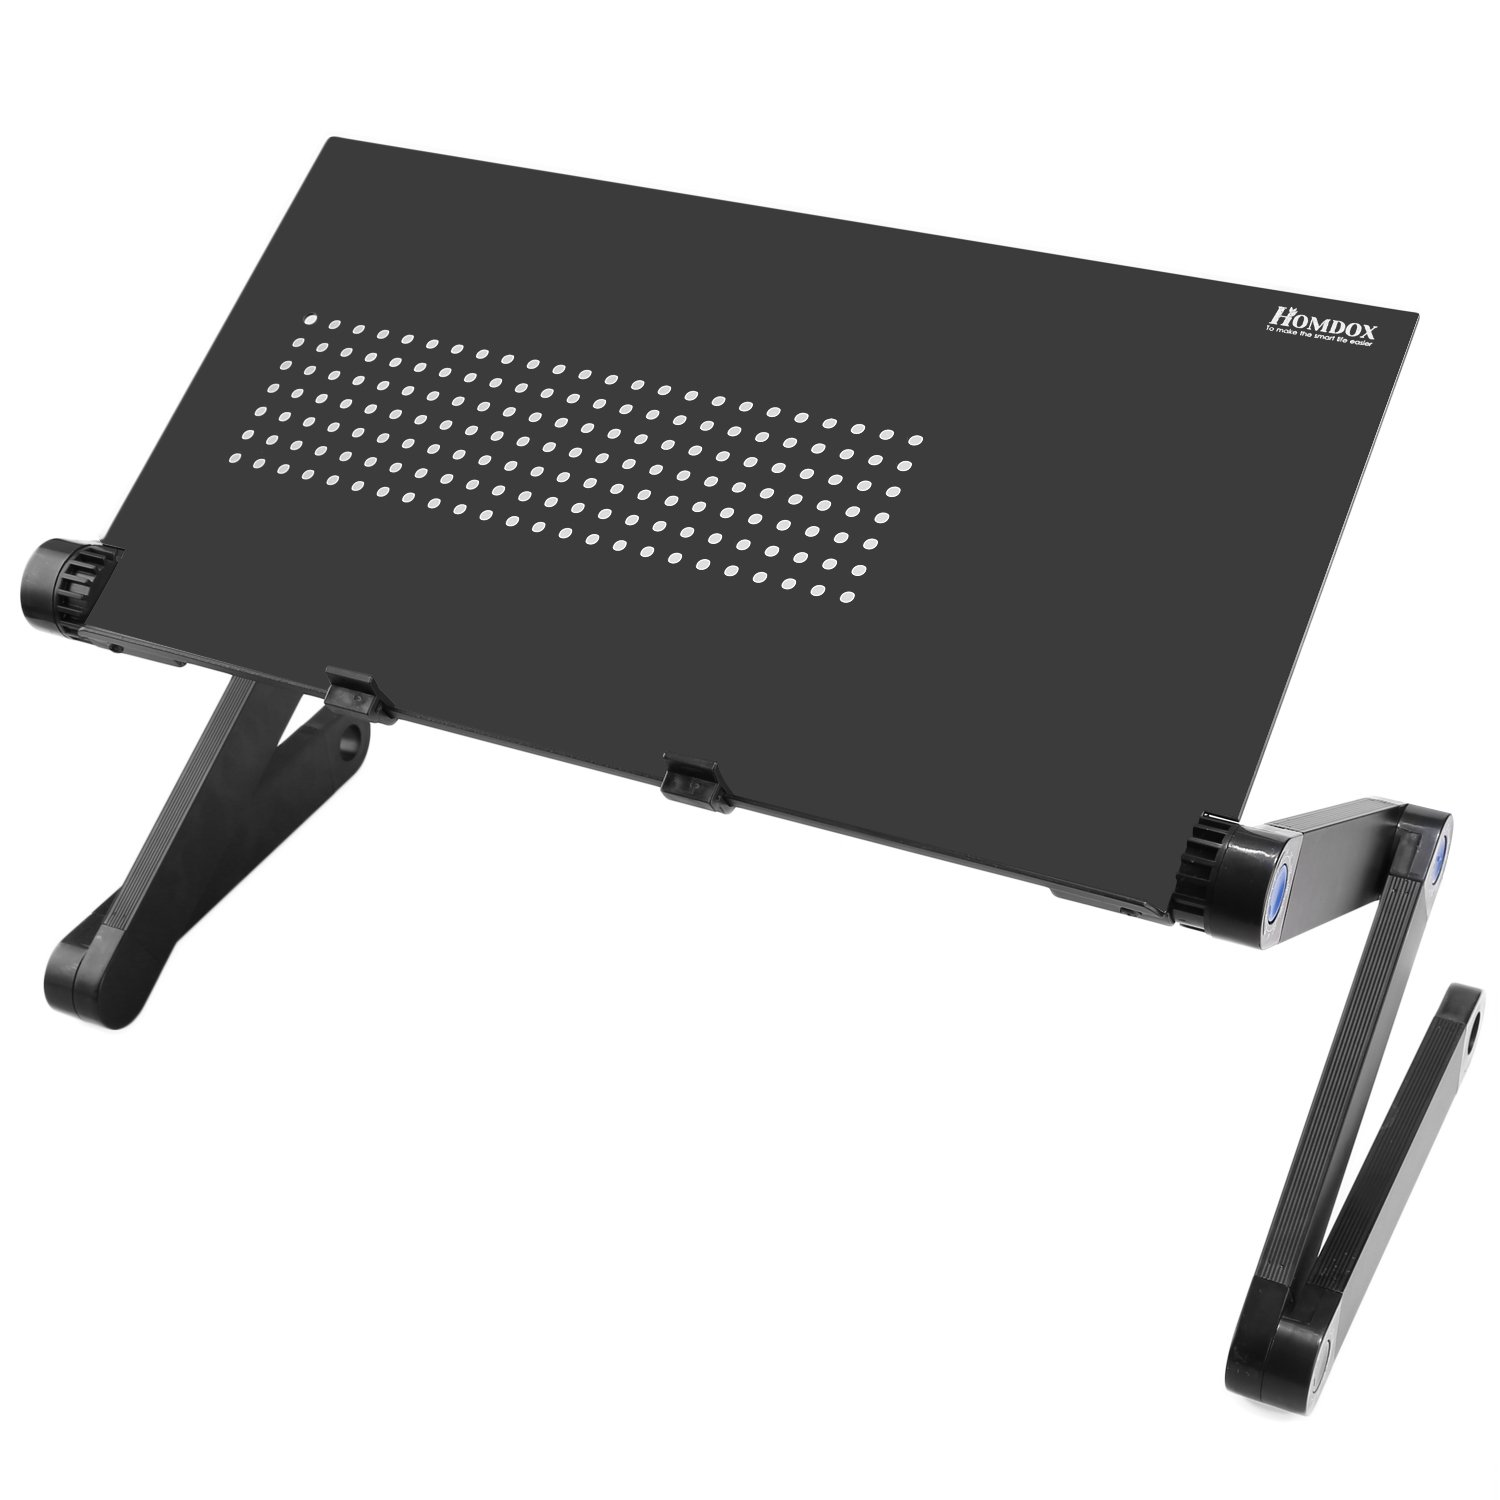 Homdox Folding Laptop Table Degree Portable Laptop Stand Bed